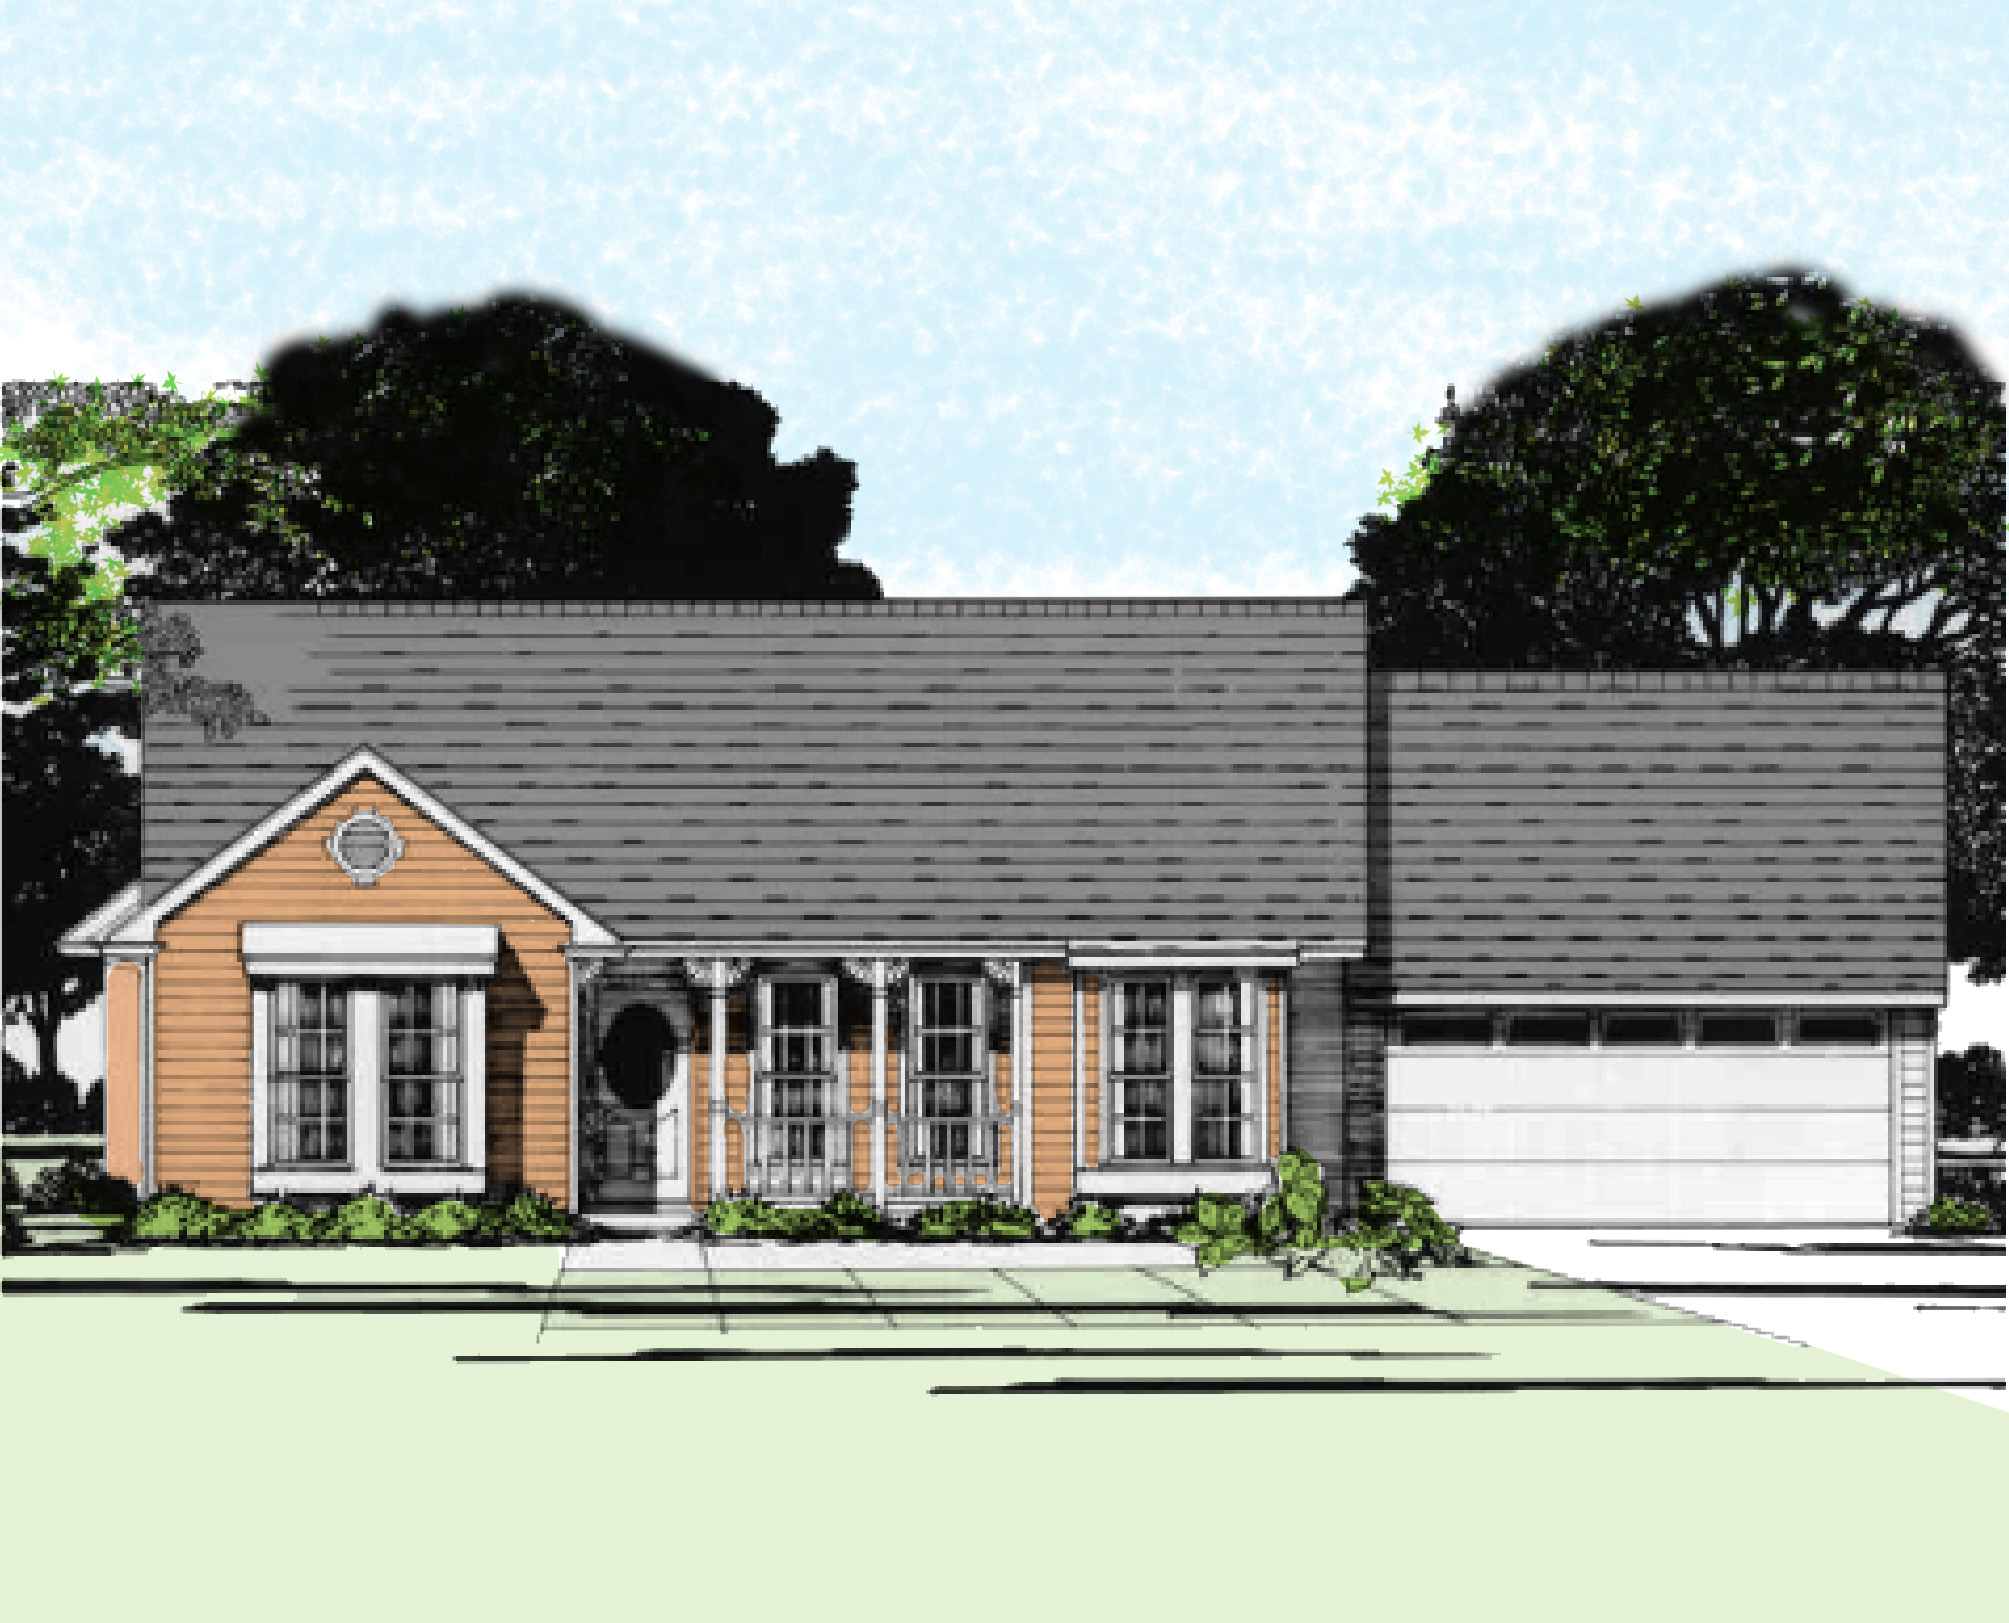 Ga together with Garage Conversion Plans Garage Conversions Before And After Lrg F A F D moreover Old S S Vintage Garage Door Plans Or Garage Plans Wdoors Vintage S Lrg F D D B D likewise D likewise D Cc A E Cee F D D D. on 3 car garage house plans ranch